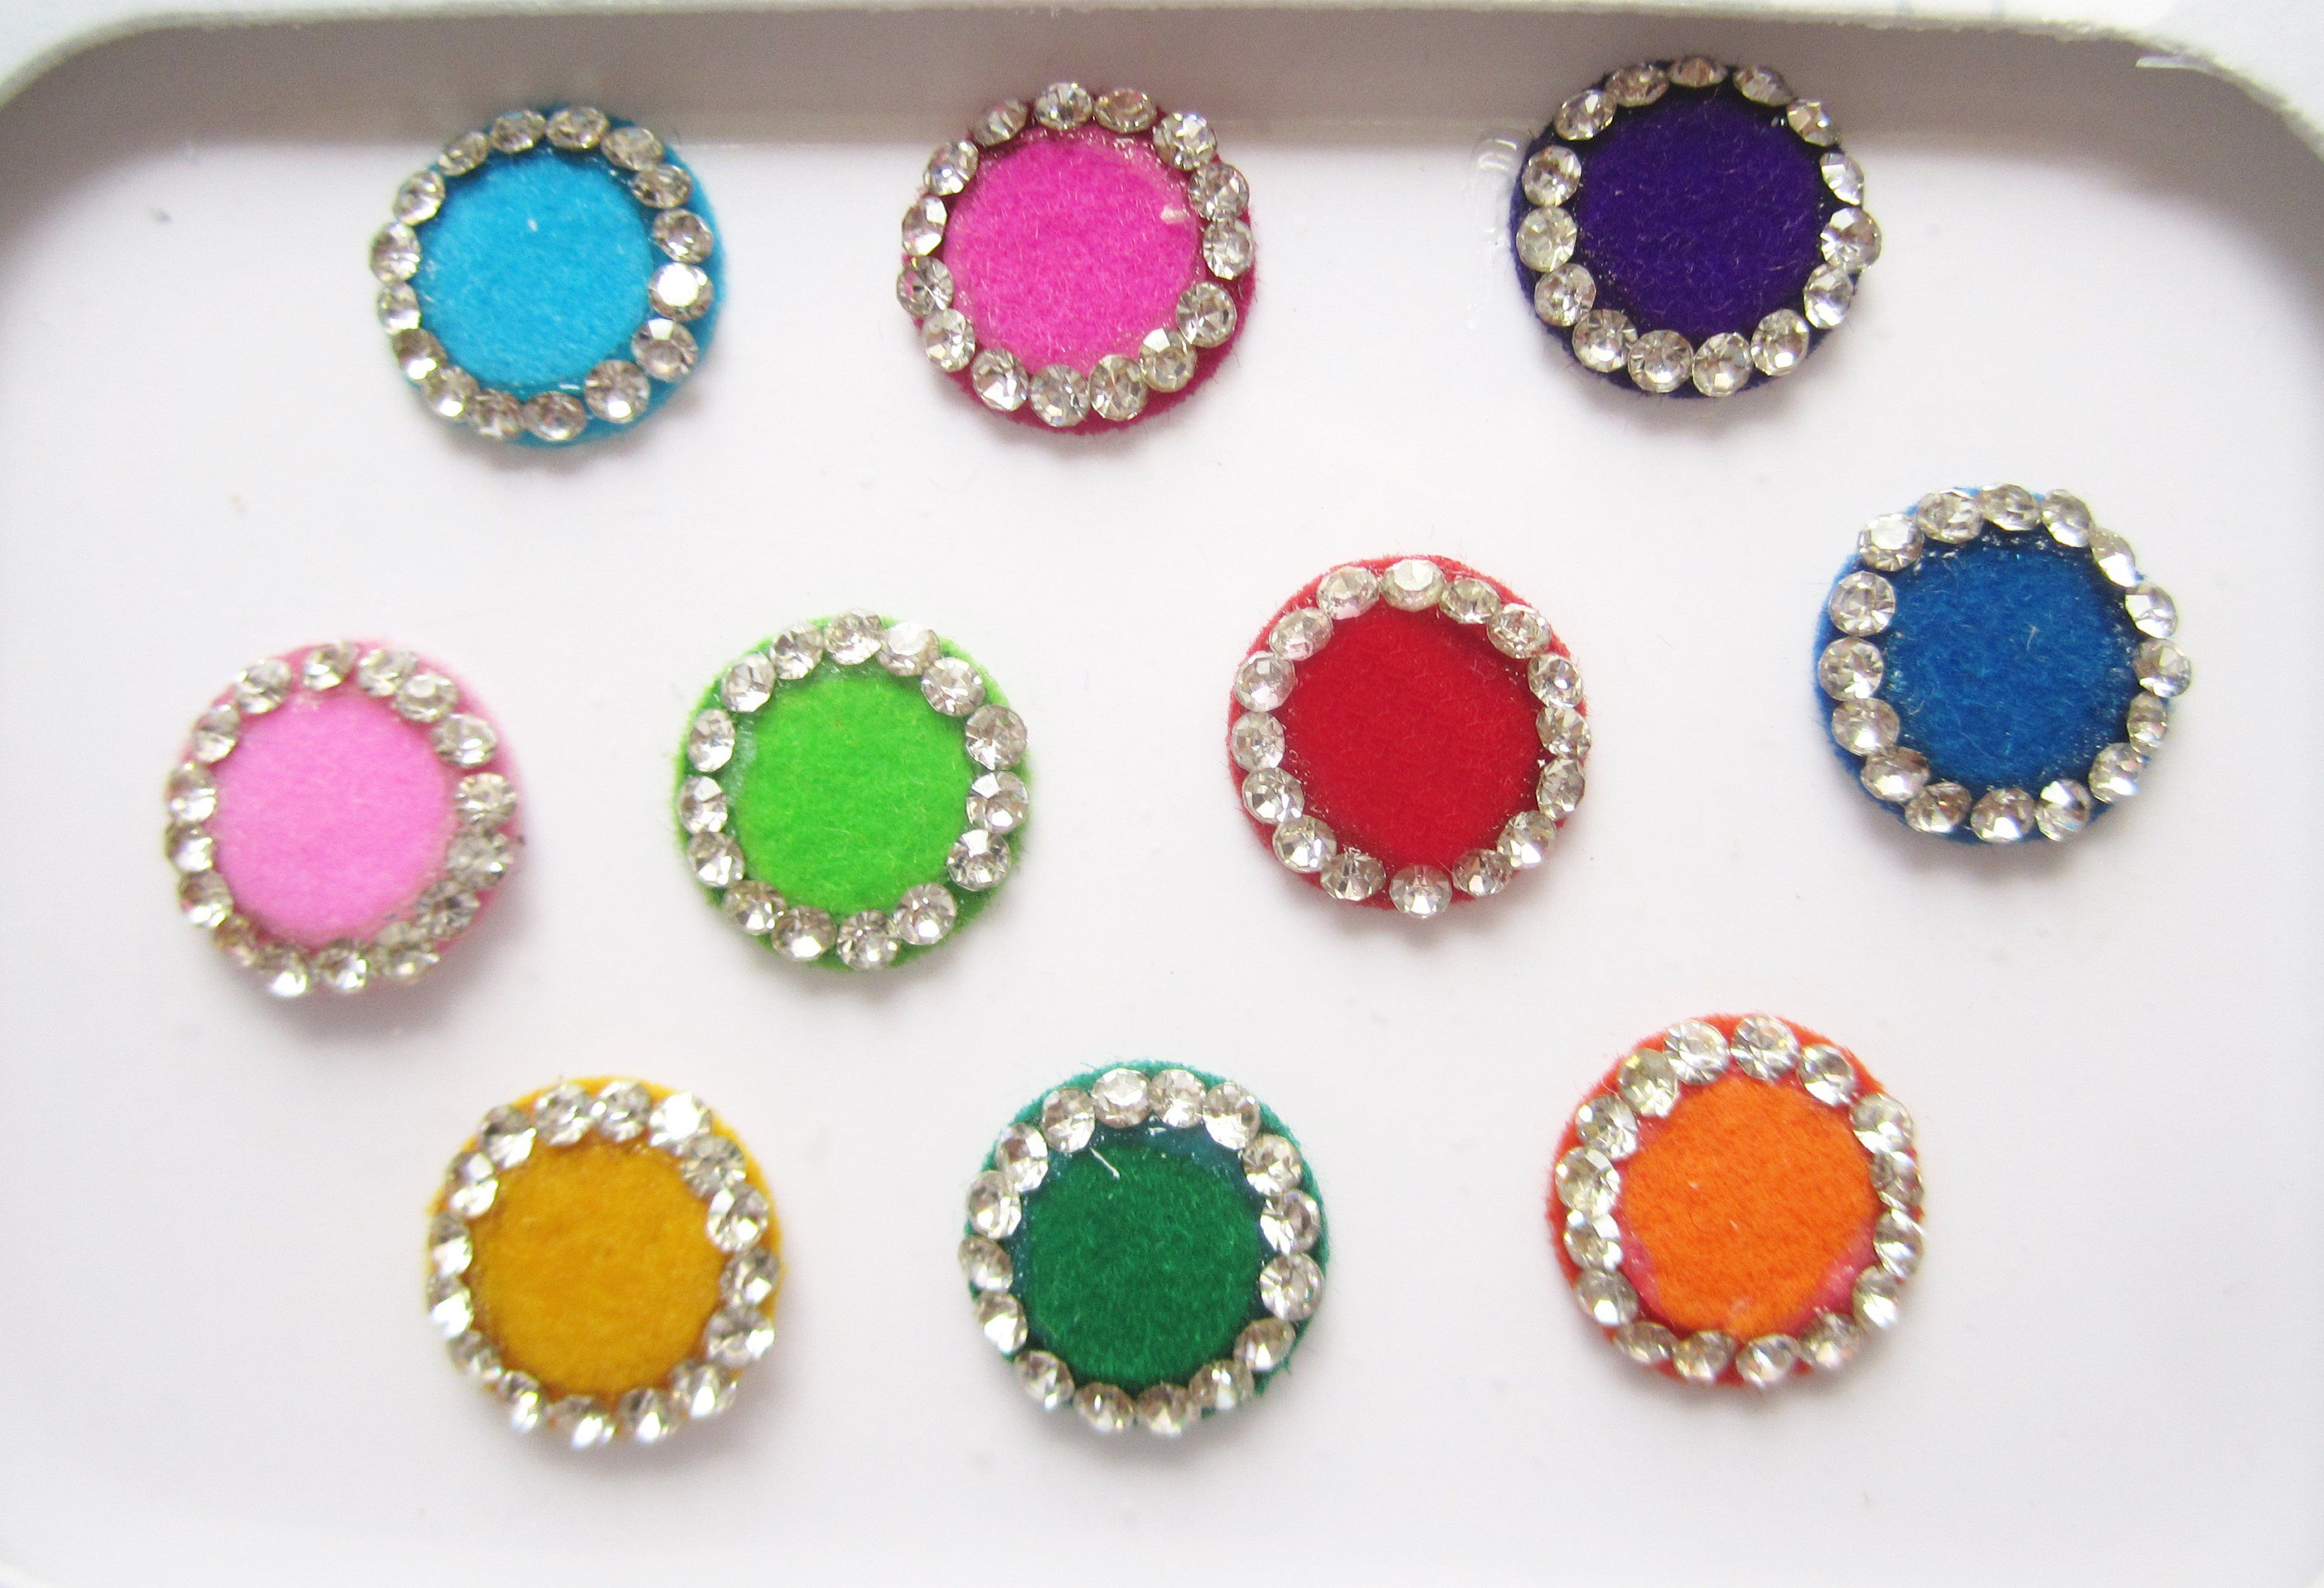 1 x SYNTHETIC OPAL BALL FOR 1.6mm EXTERNALLY THREADED BARS BALL ONLY